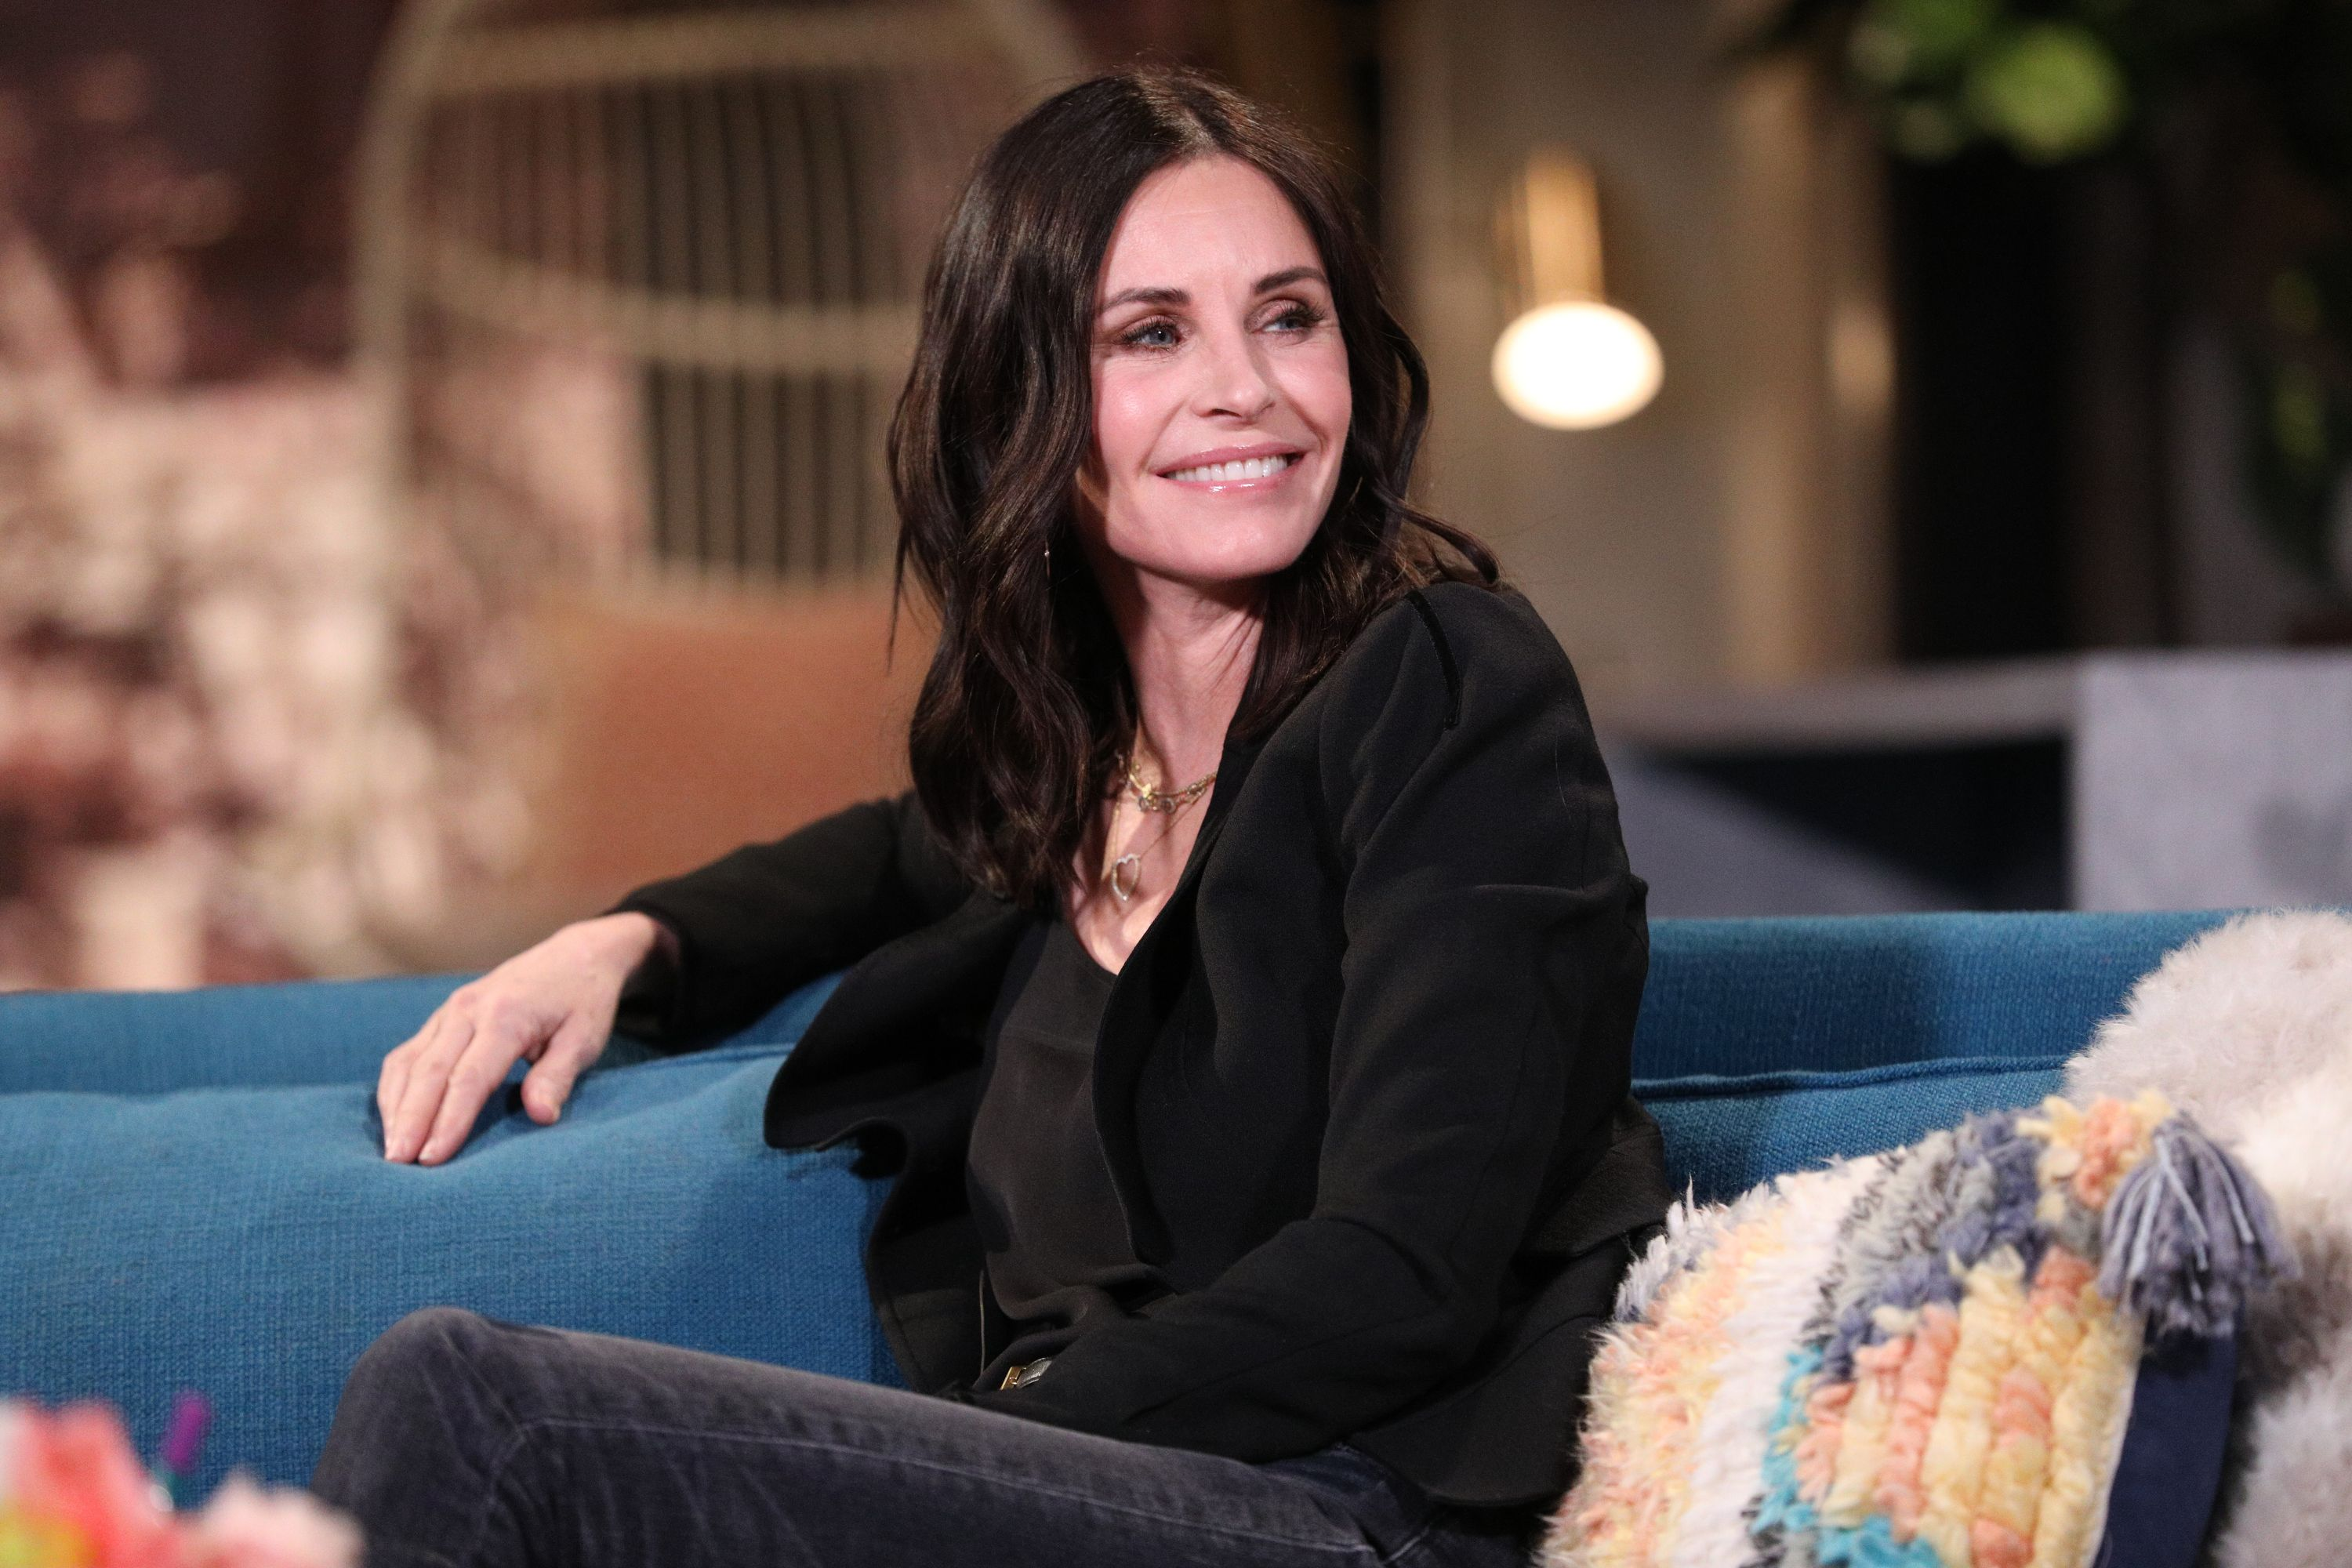 Courteney Cox Posted an Impressive Poolside Video on Instagram With a Tribute to Missy Elliott